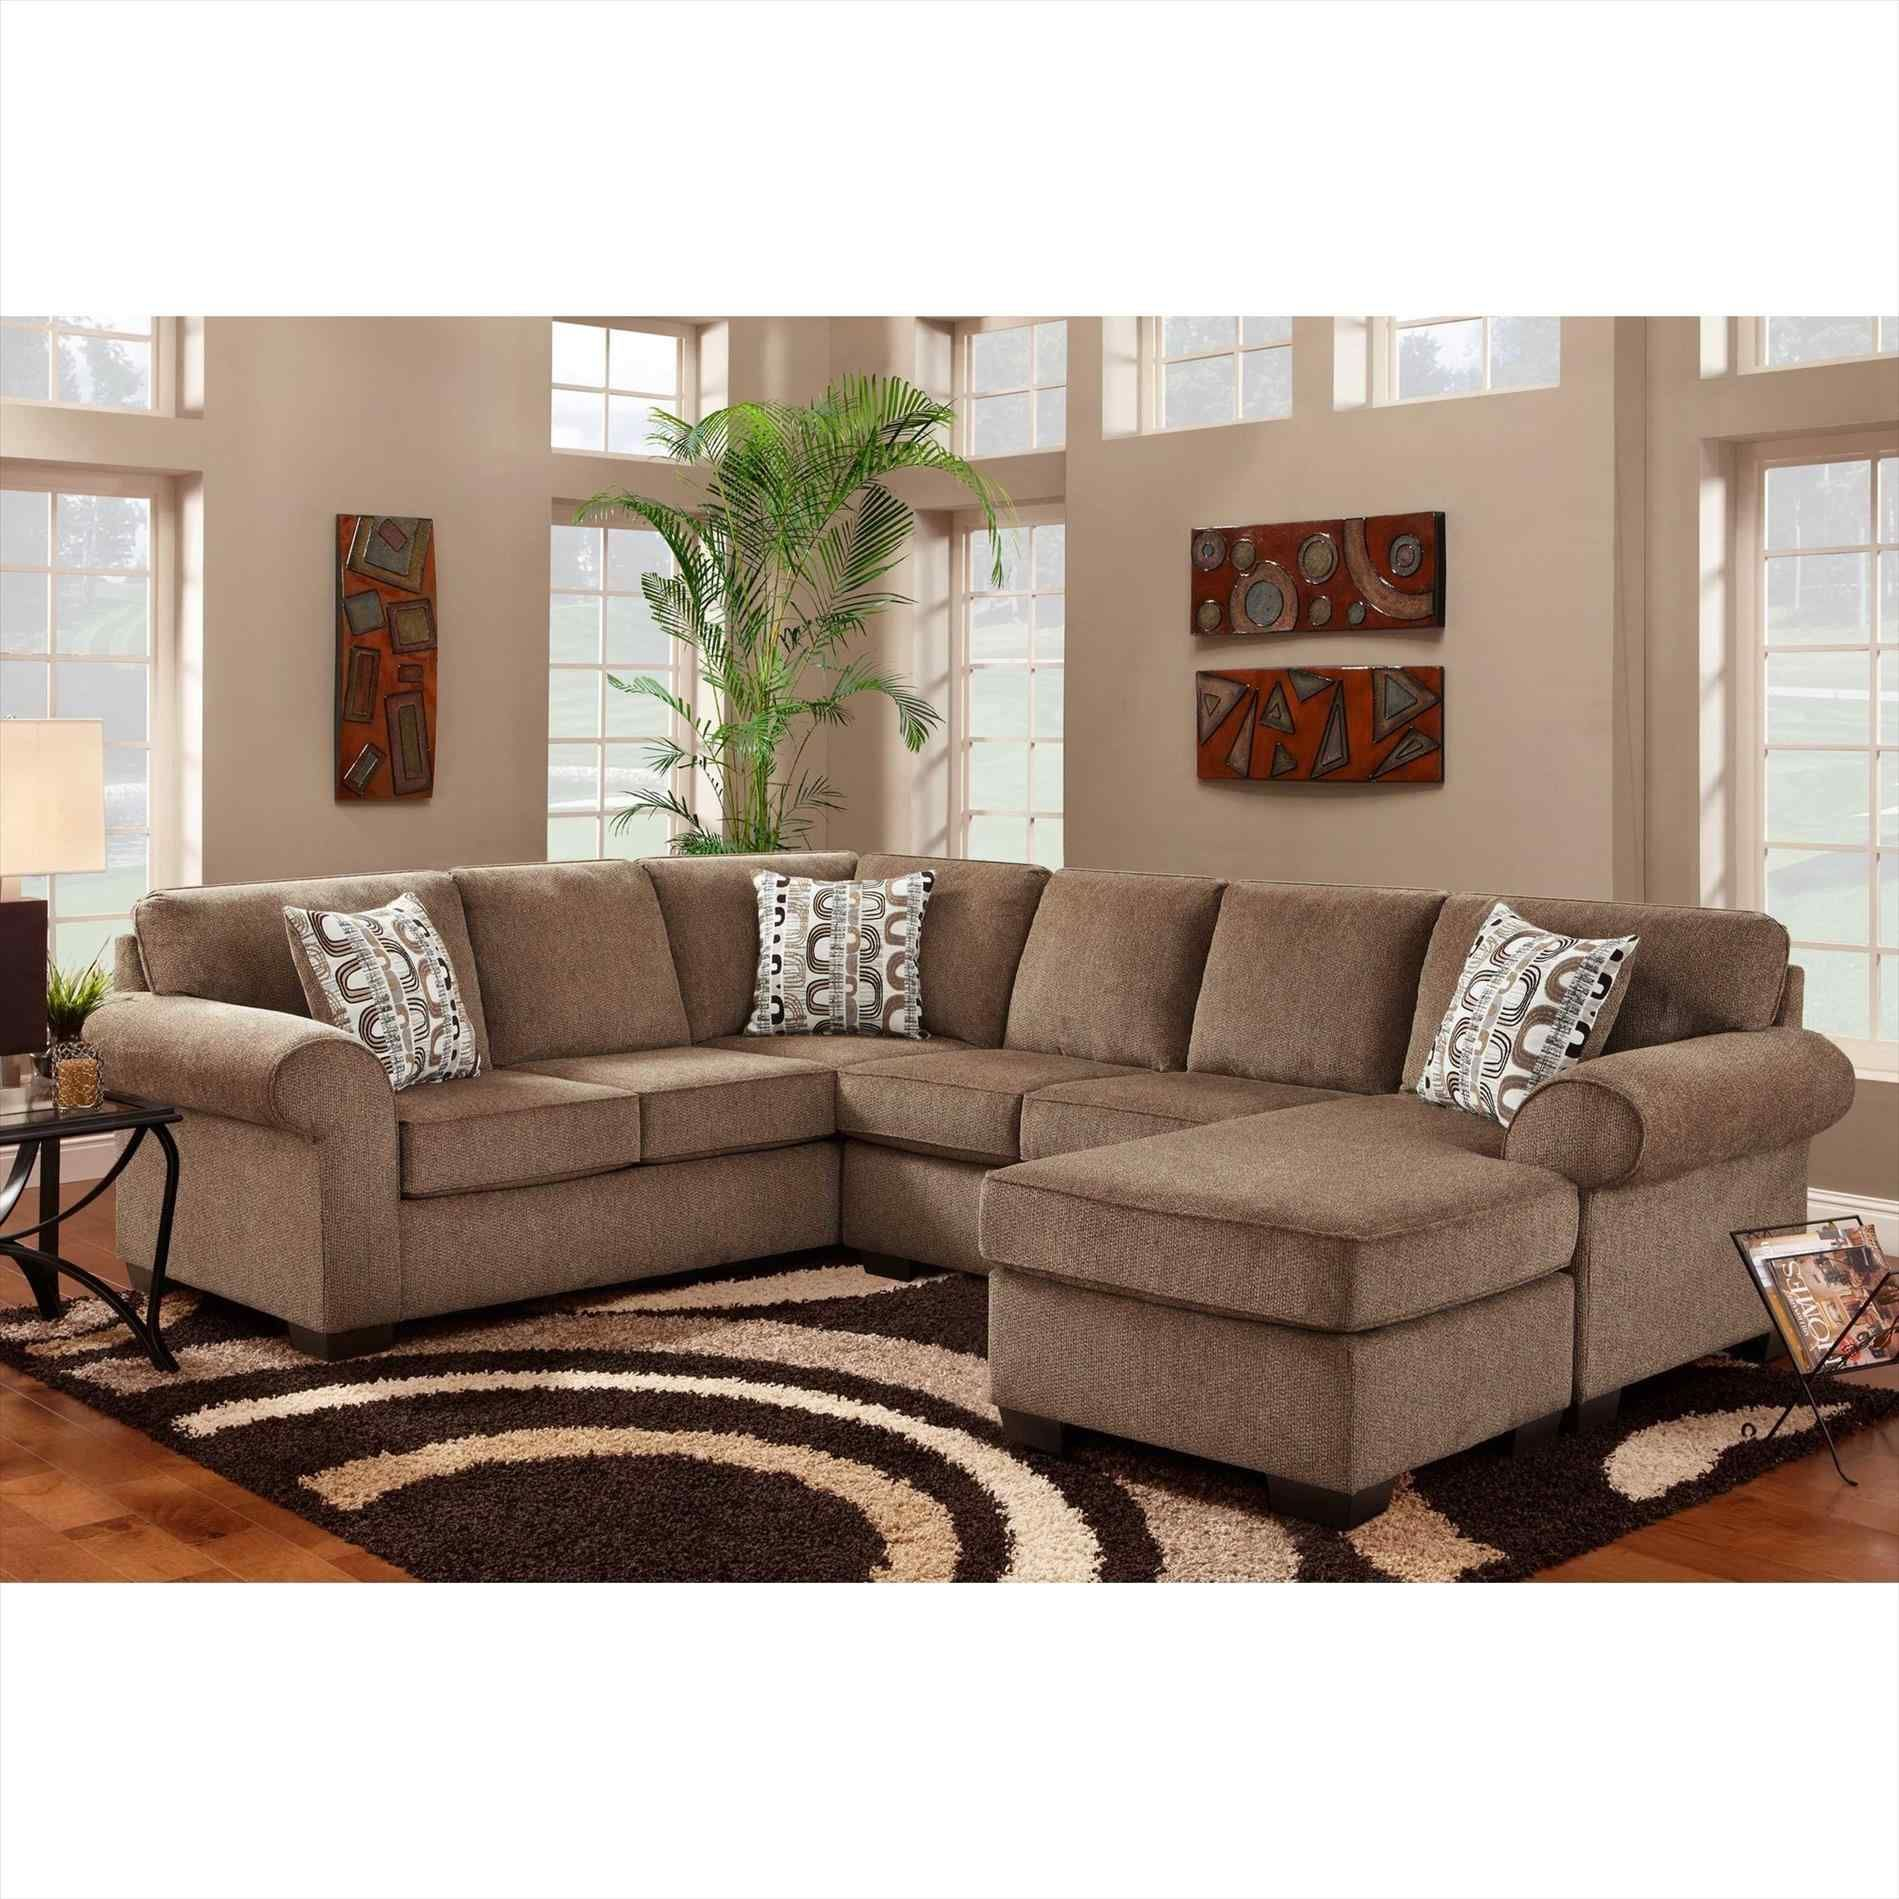 And Leather Sectional Sofa Room Exciting Denim Design For Furniture Amazing  Selection Of S Houston Furniture Chenille And Leather Sectional Sofa Amazing